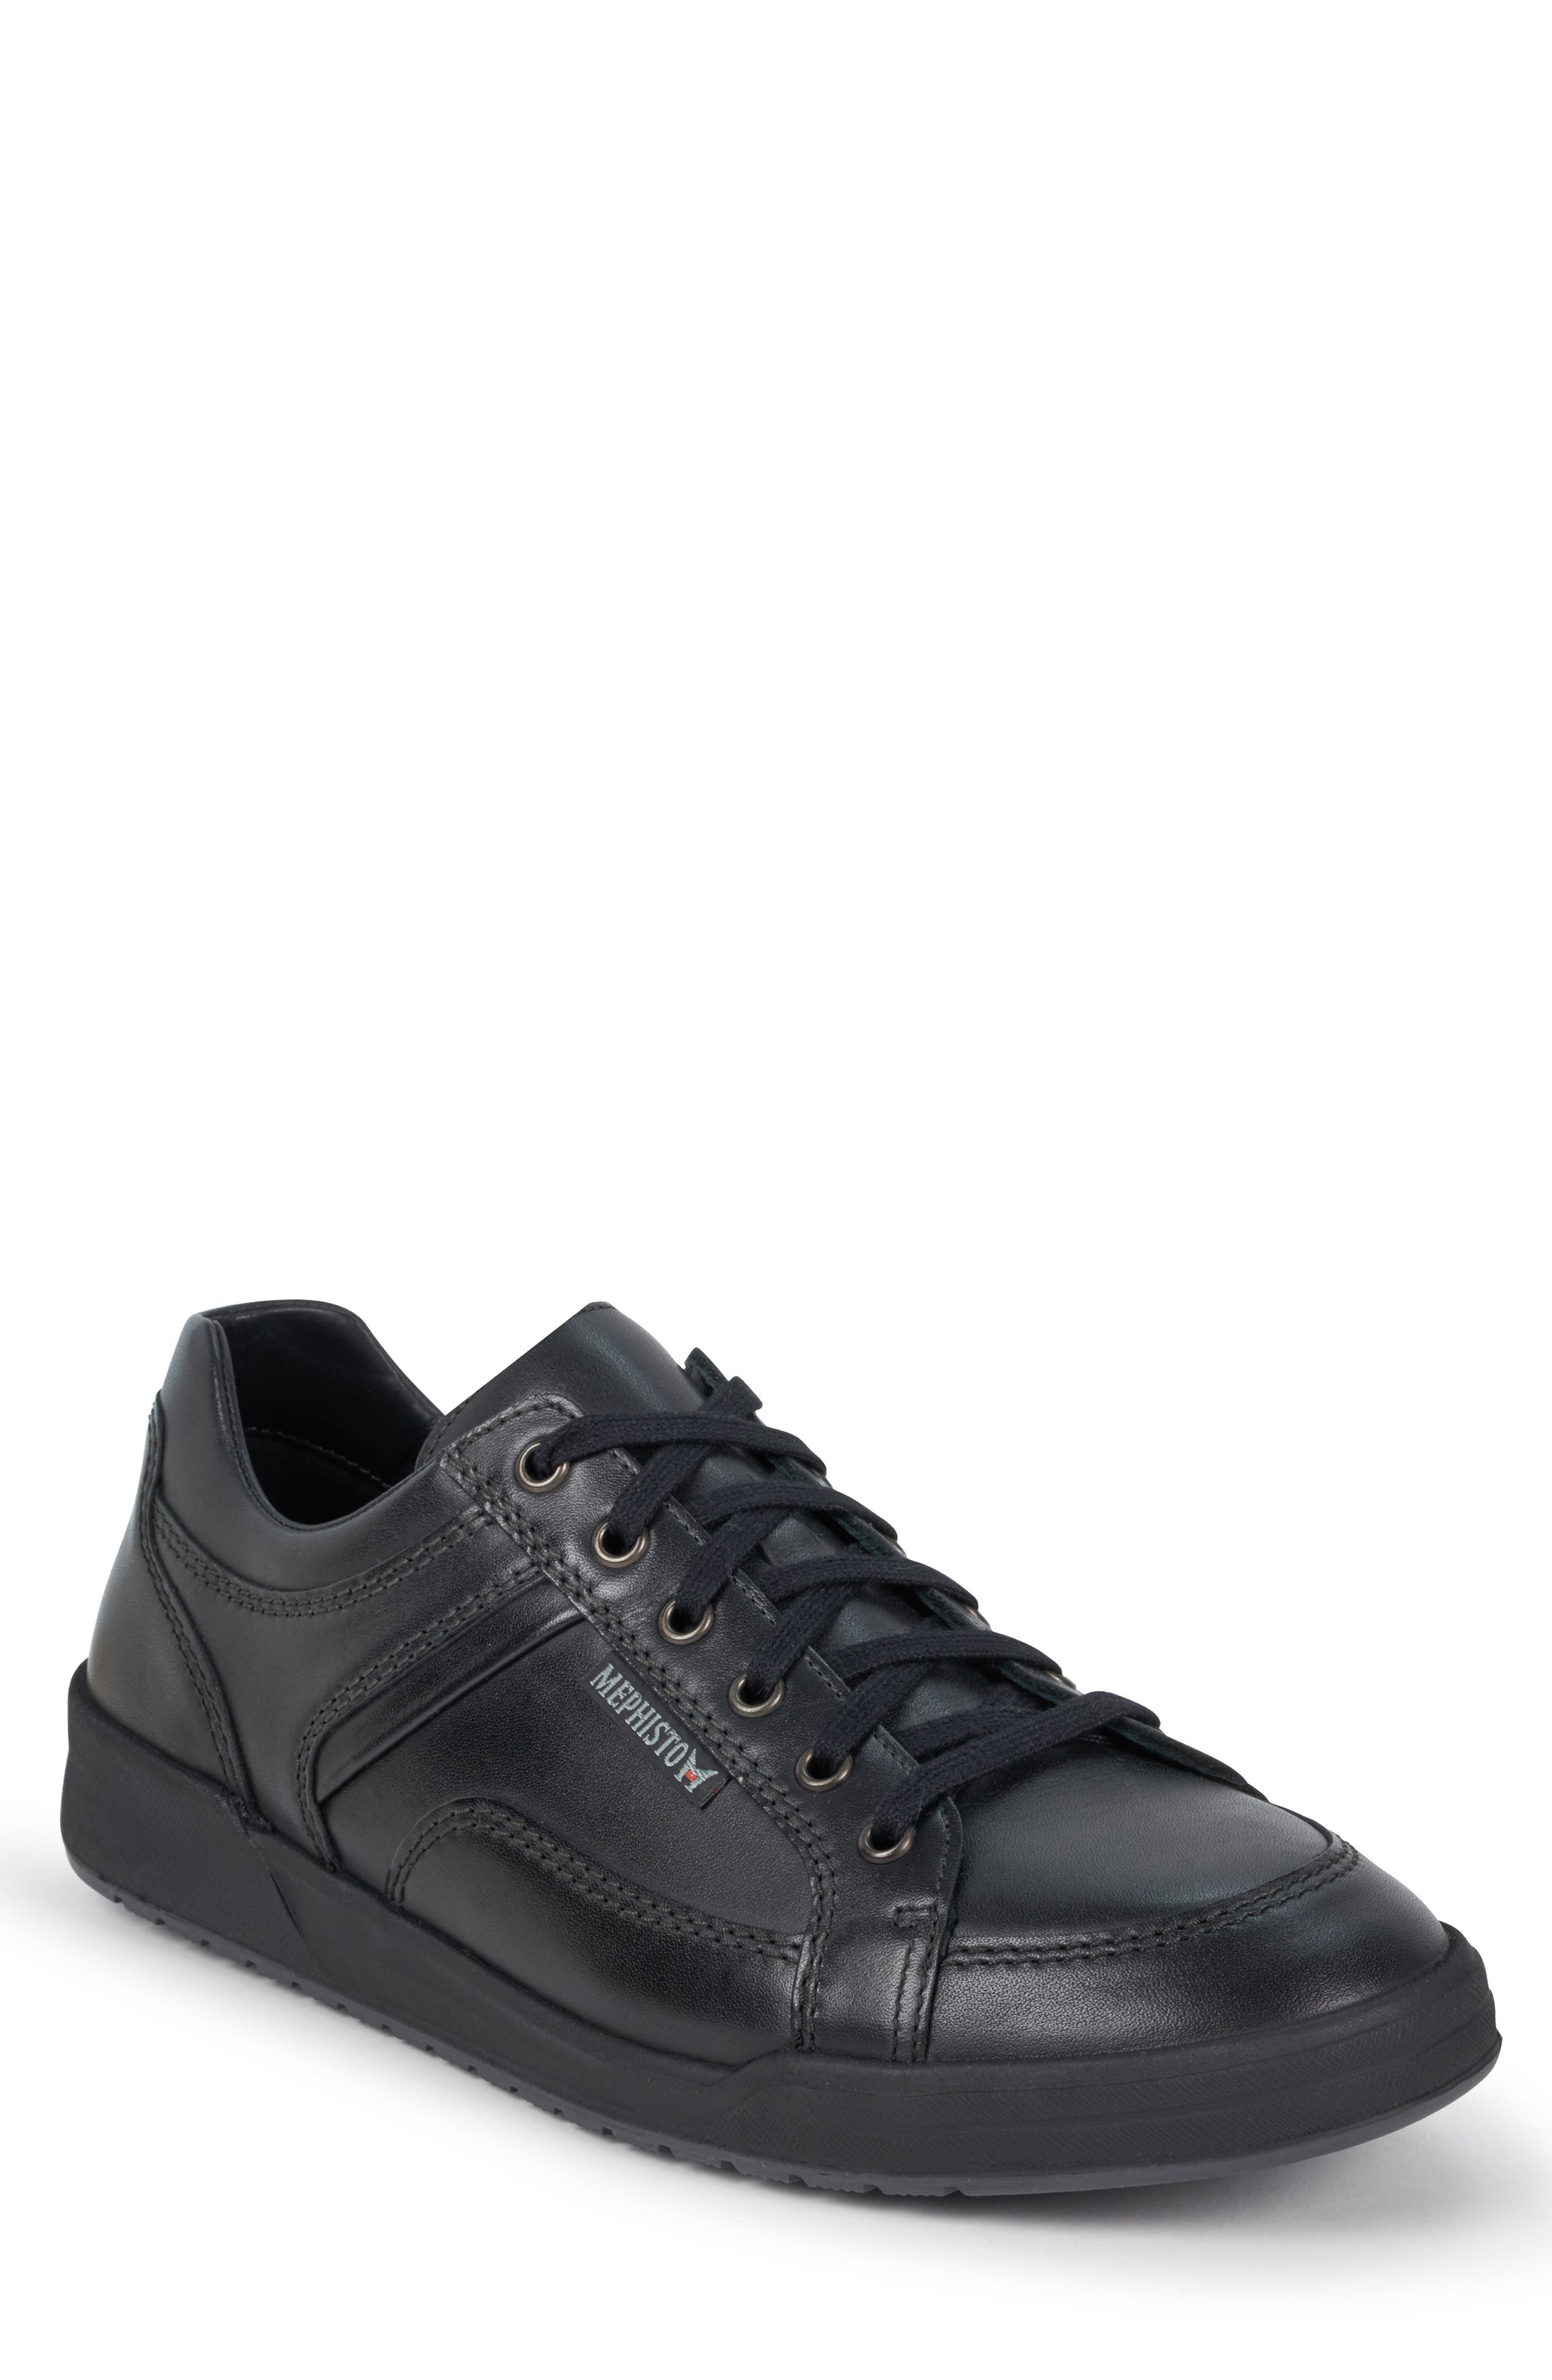 MEPHISTO 'Rodrigo' Sneaker, Main, color, BLACK/BLACK LEATHER